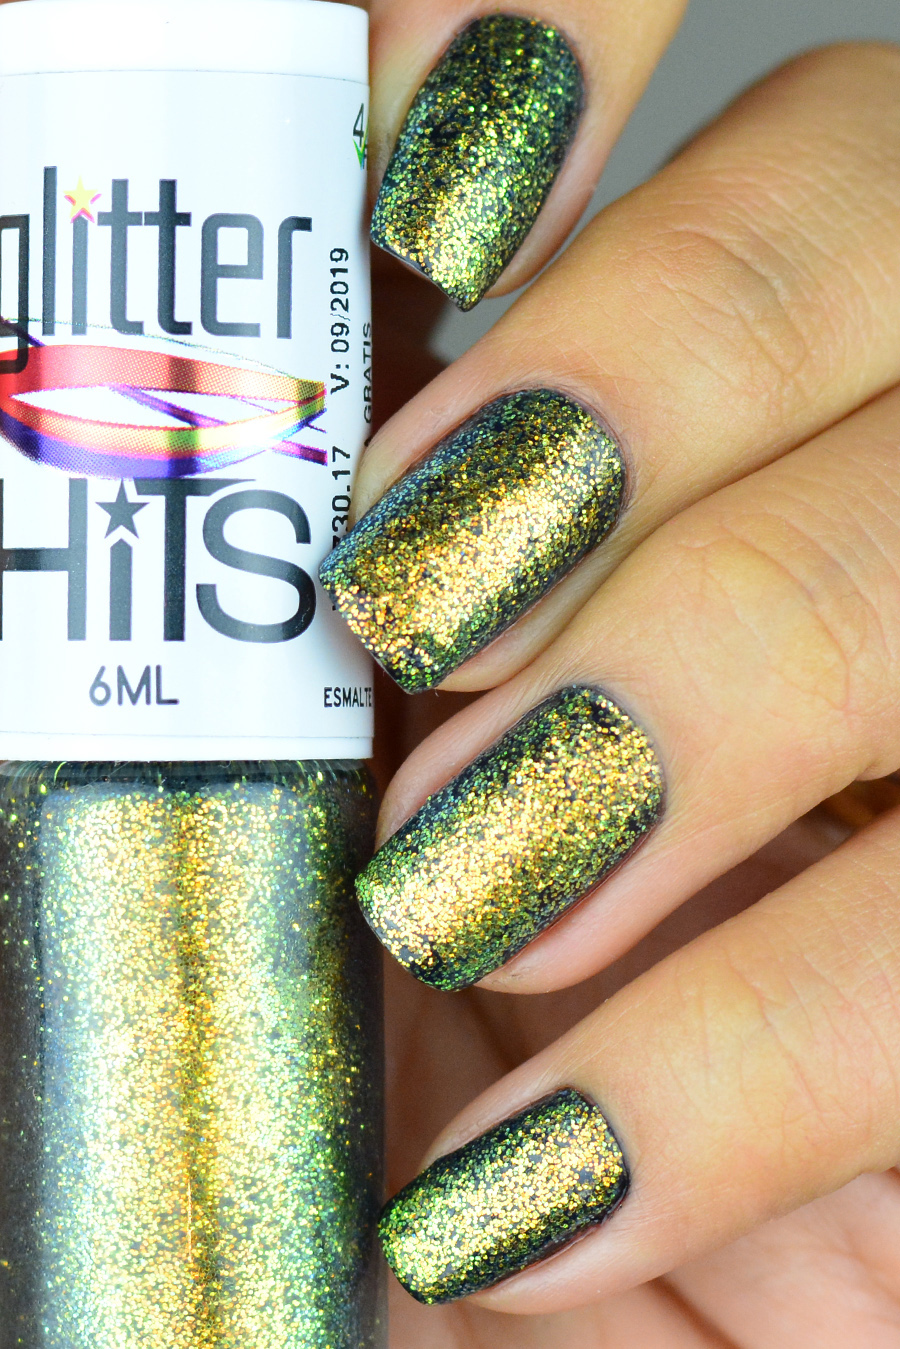 Hits_Glitter_Multichrome_04